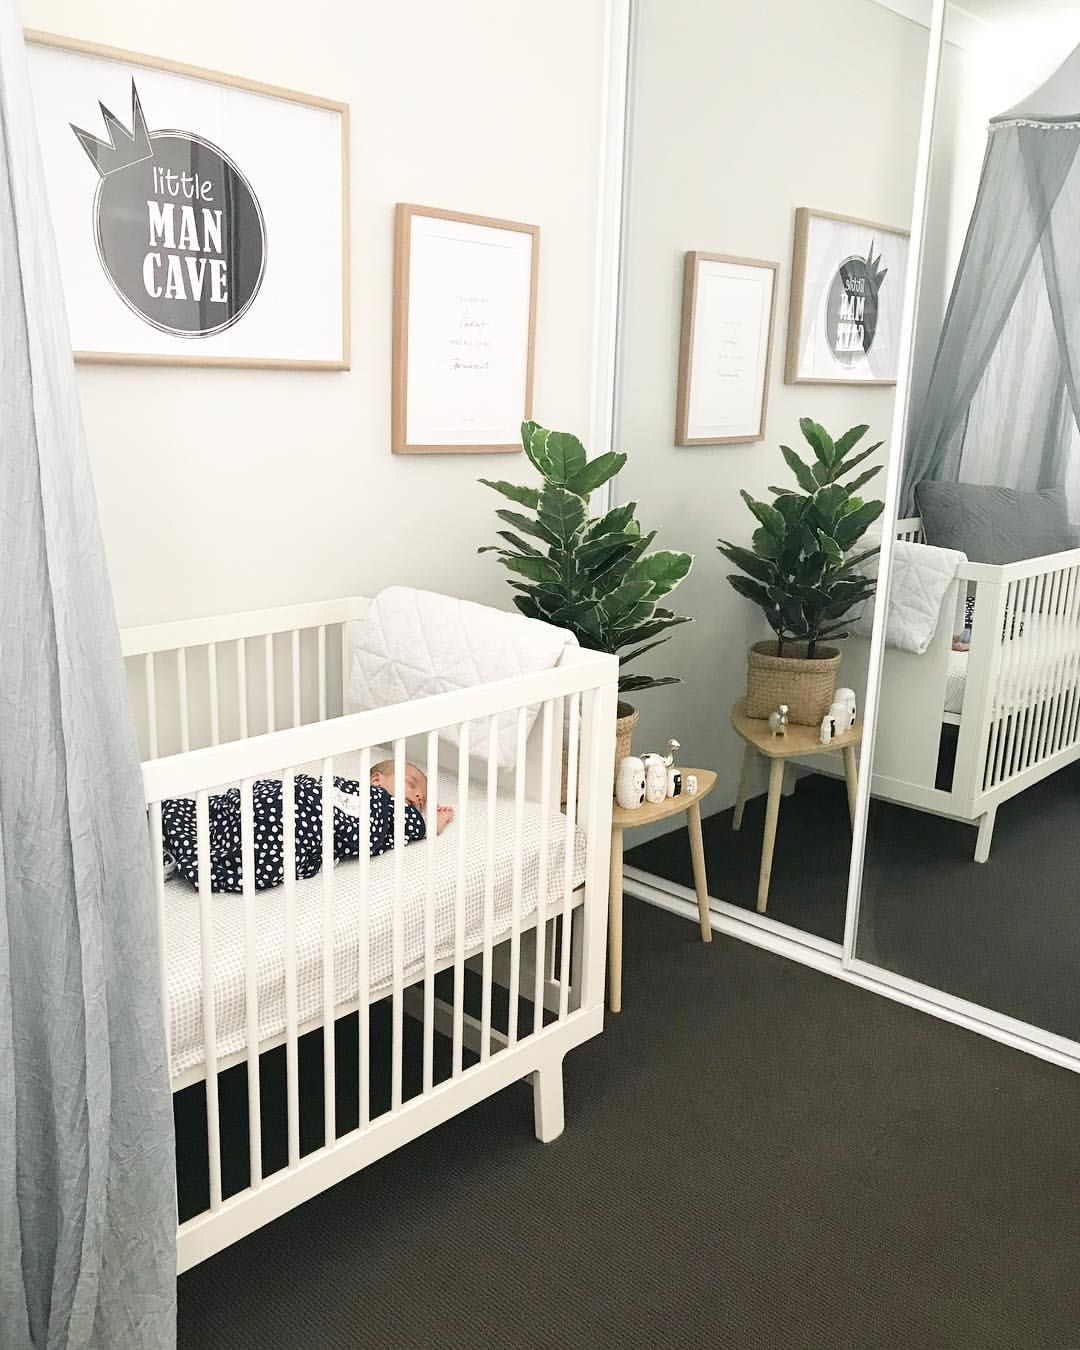 Our Little Baby Boy S Neutral Room: Grey White Nursery, Little Man Cave Print, Oeuf Sparrow